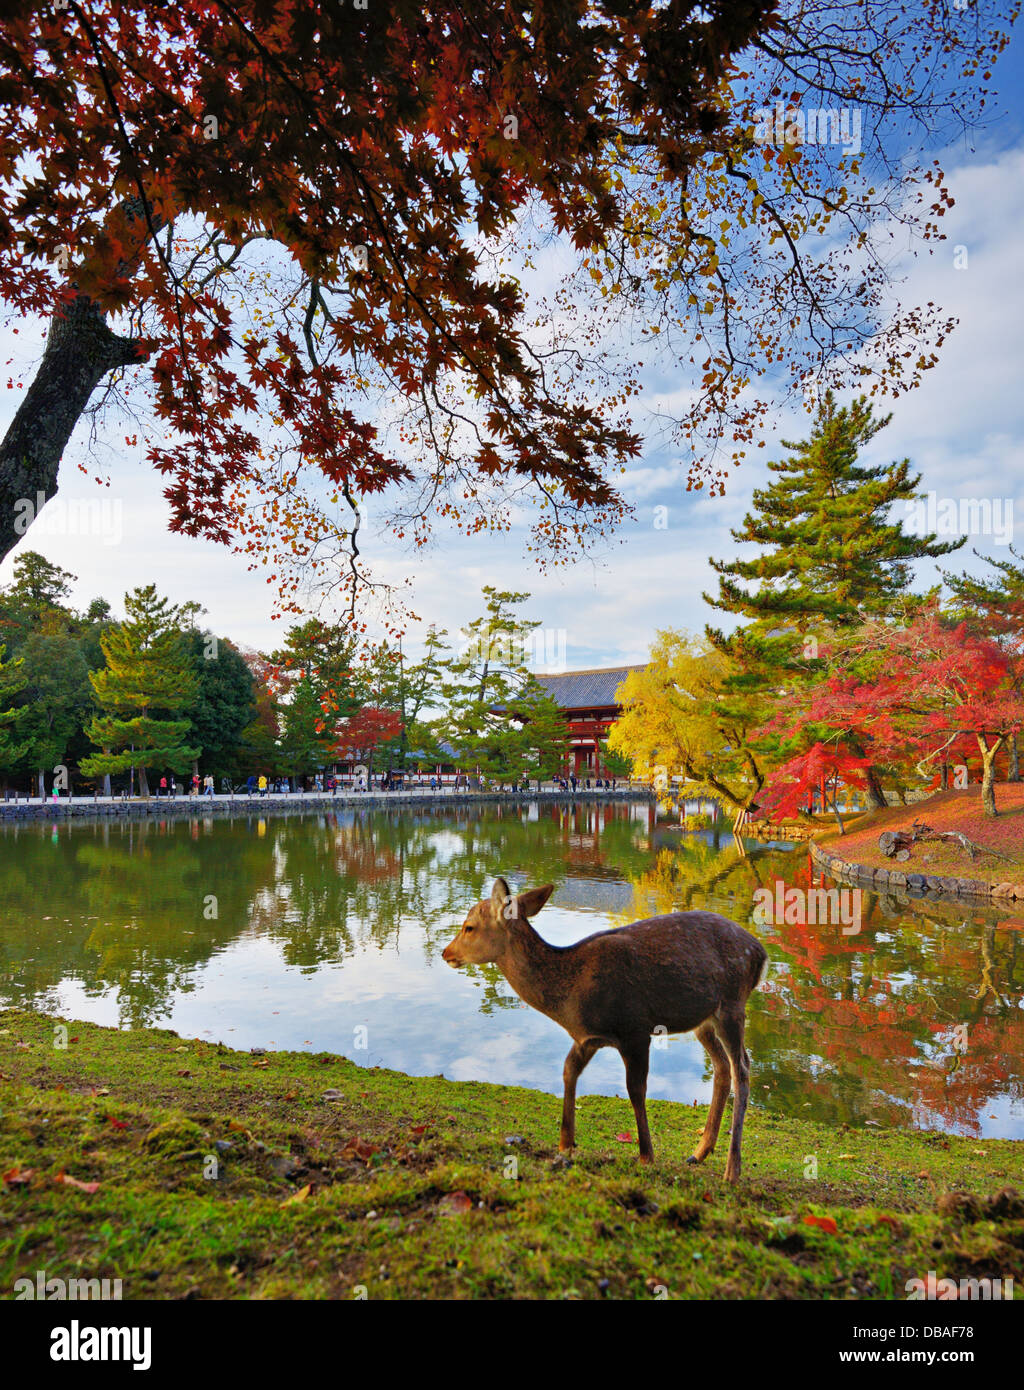 Deer at Todai-ji Temple grounds in Nara, Japan. - Stock Image